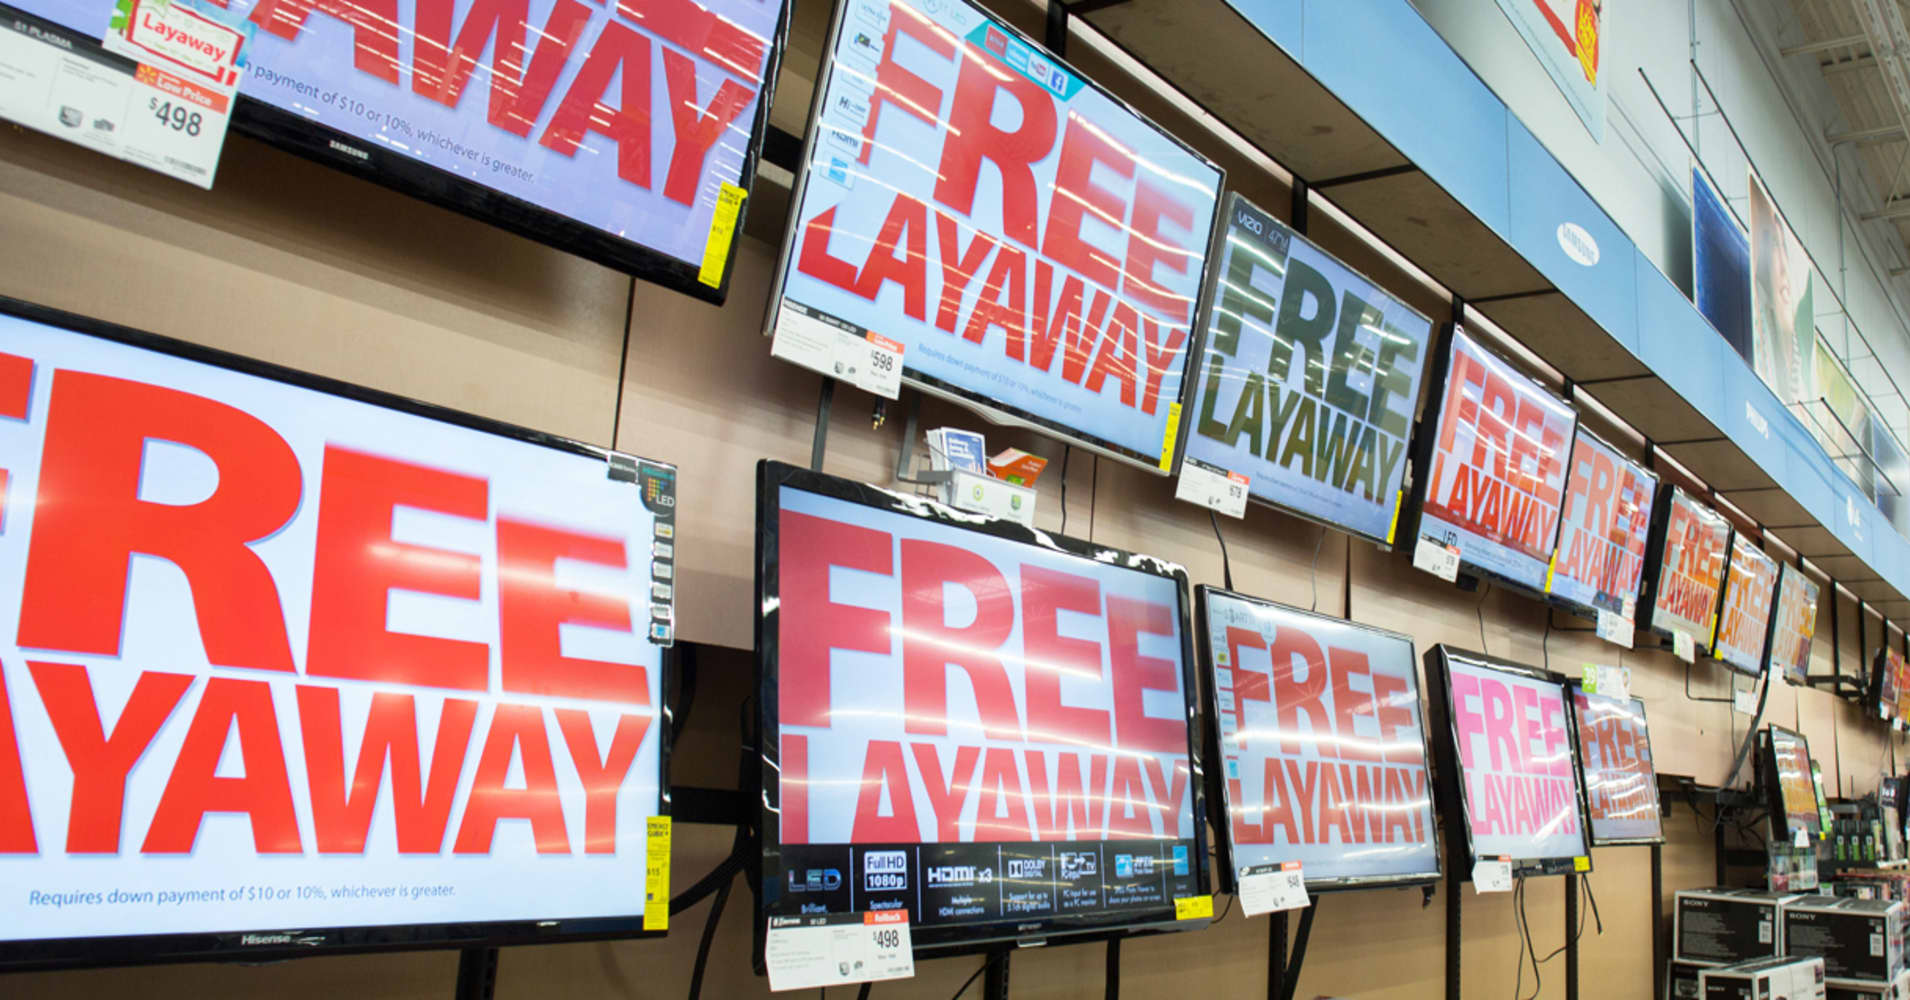 Layaway gives Christmas hope to shoppers burned by credit